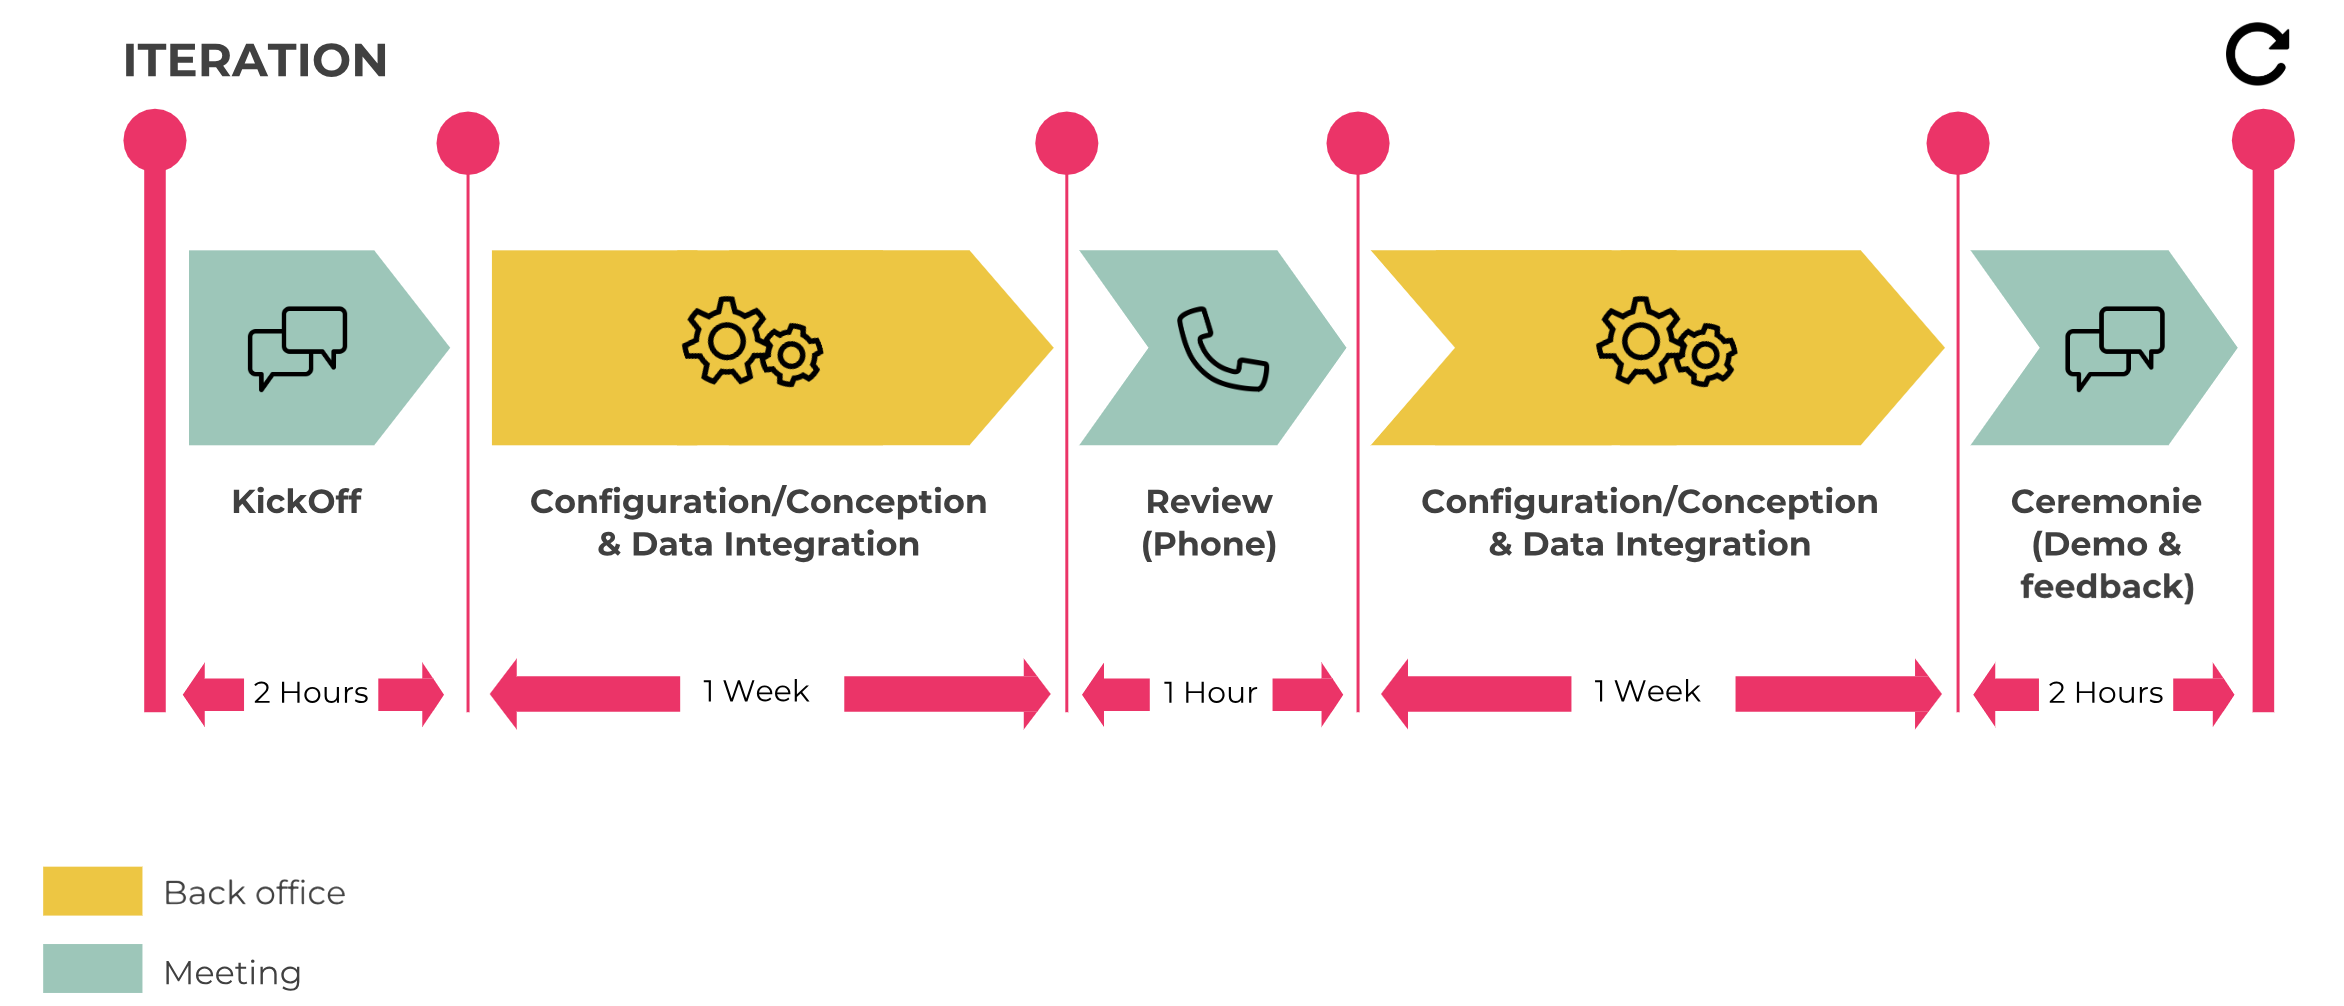 Lifecycle of an iteration